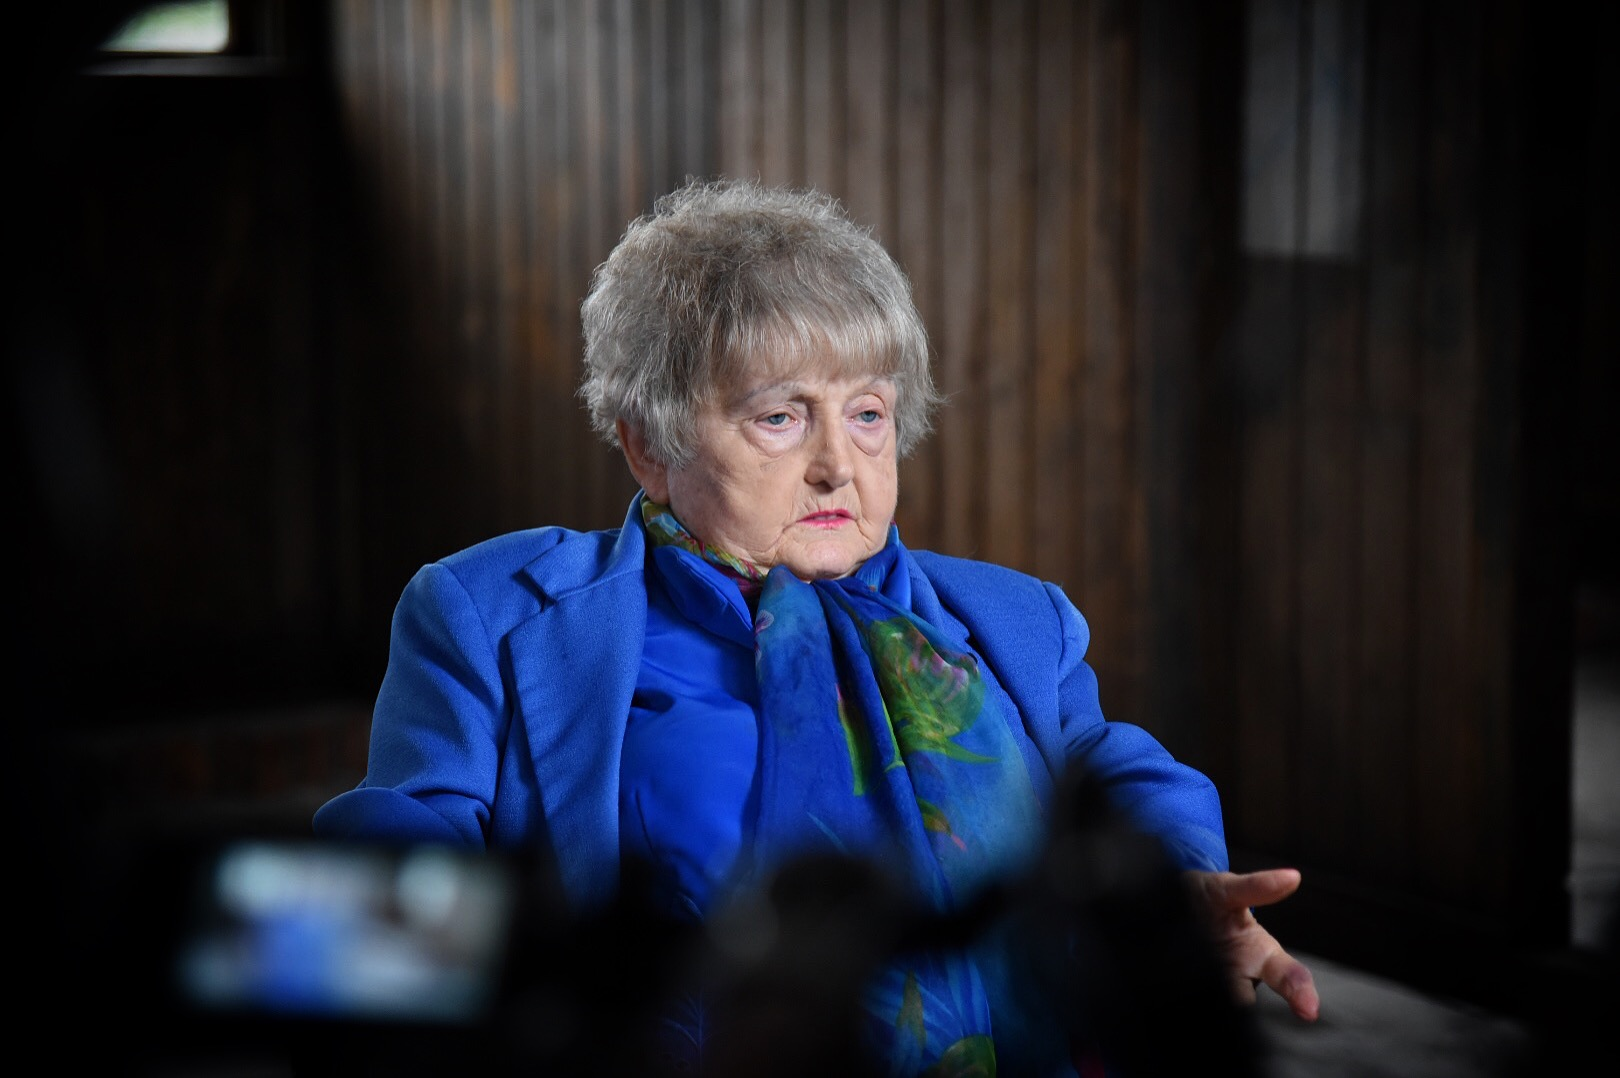 Eva Kor speaks at a barracks at Birkenau, Auschwitz.